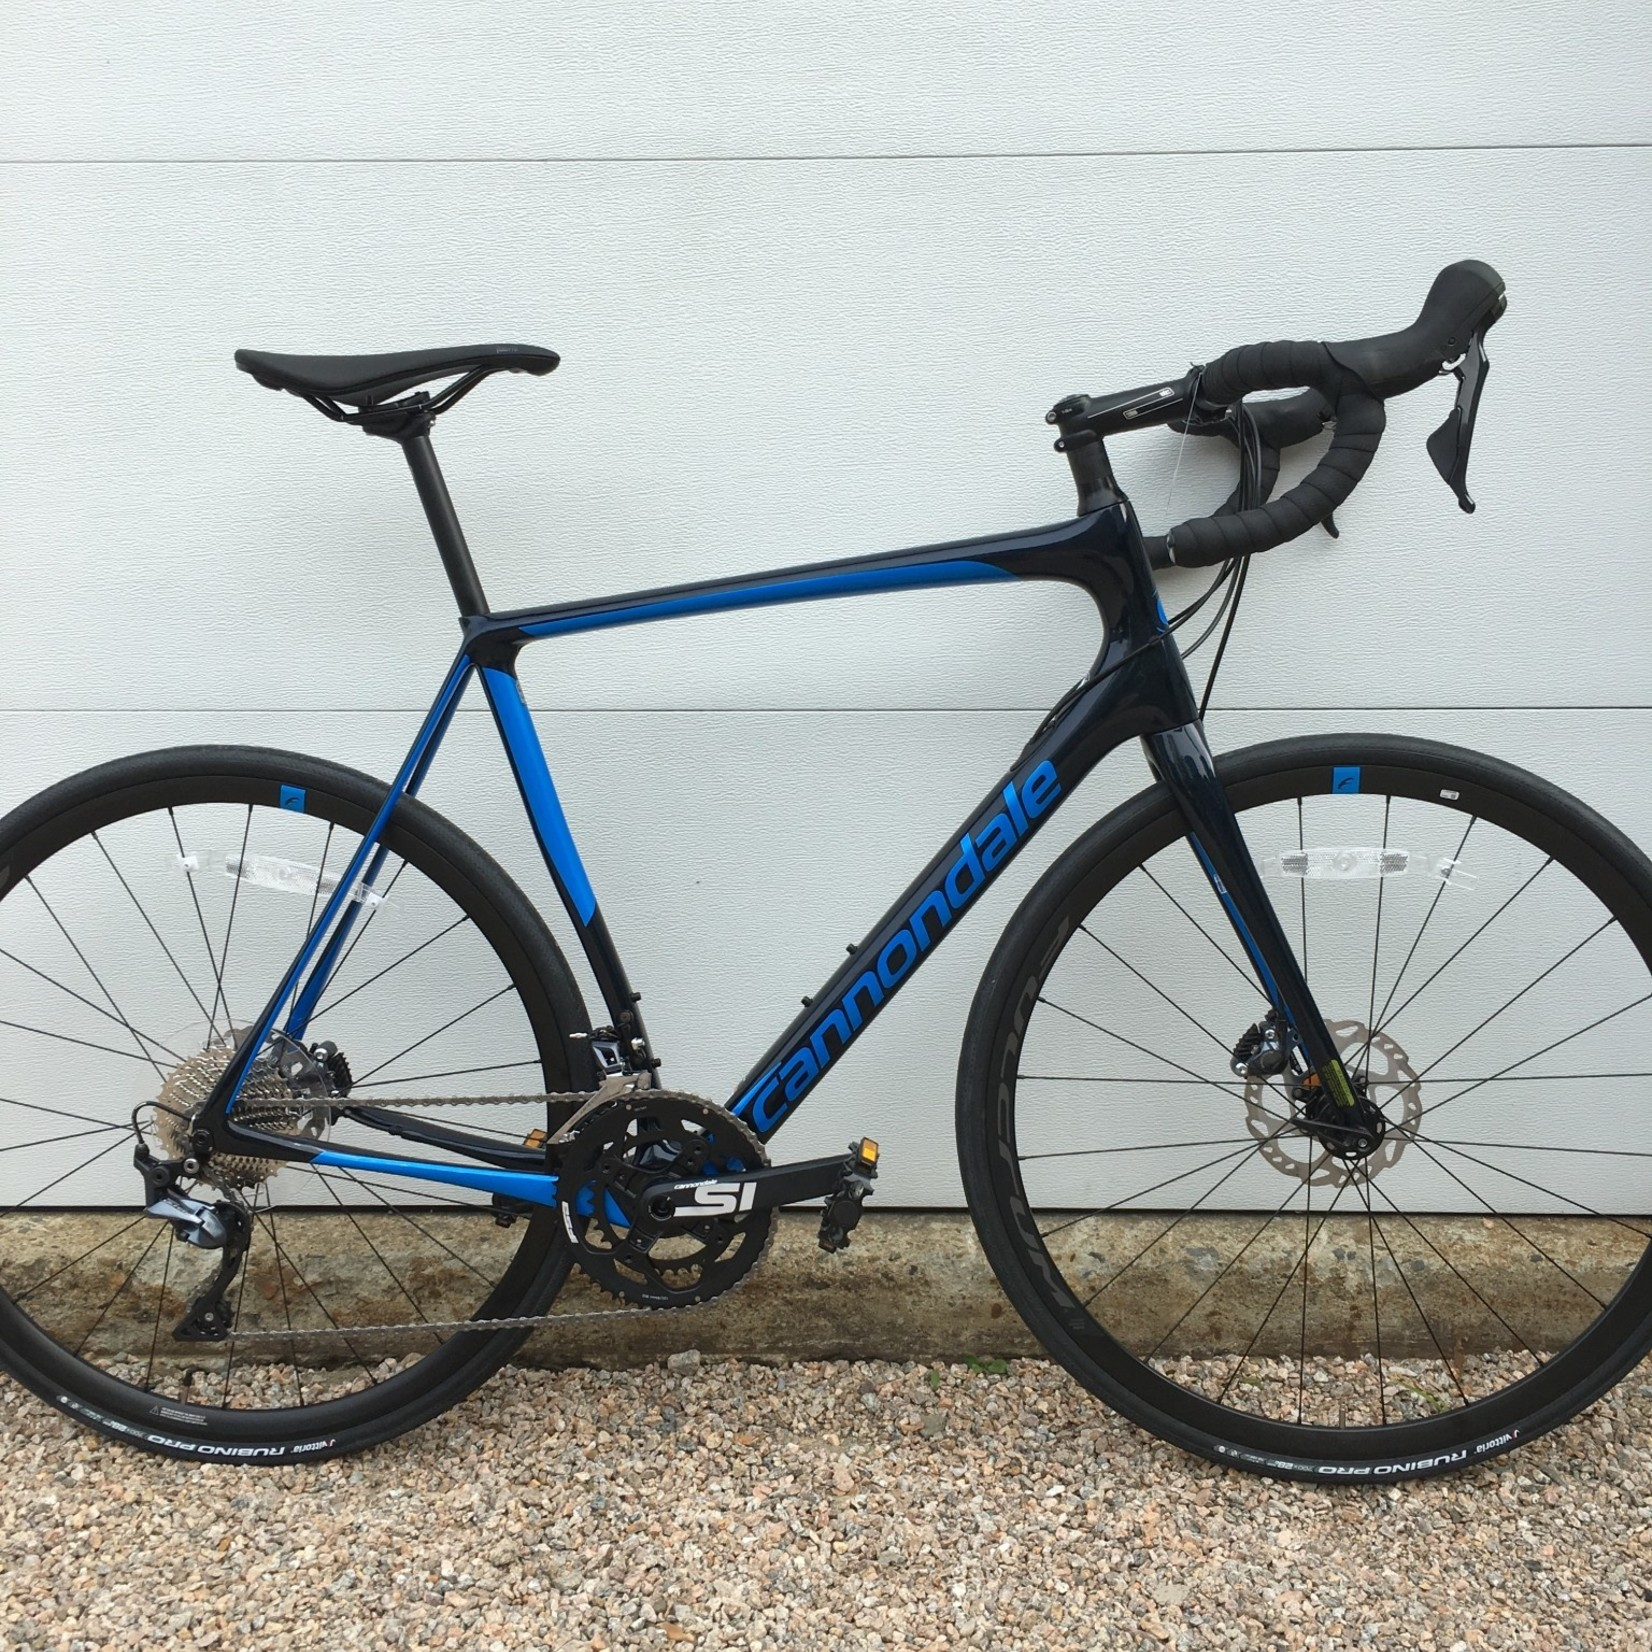 Cannondale 700 M Synapse Crb Disc Ult MDN 58 Midnight Blue 58 cm frame